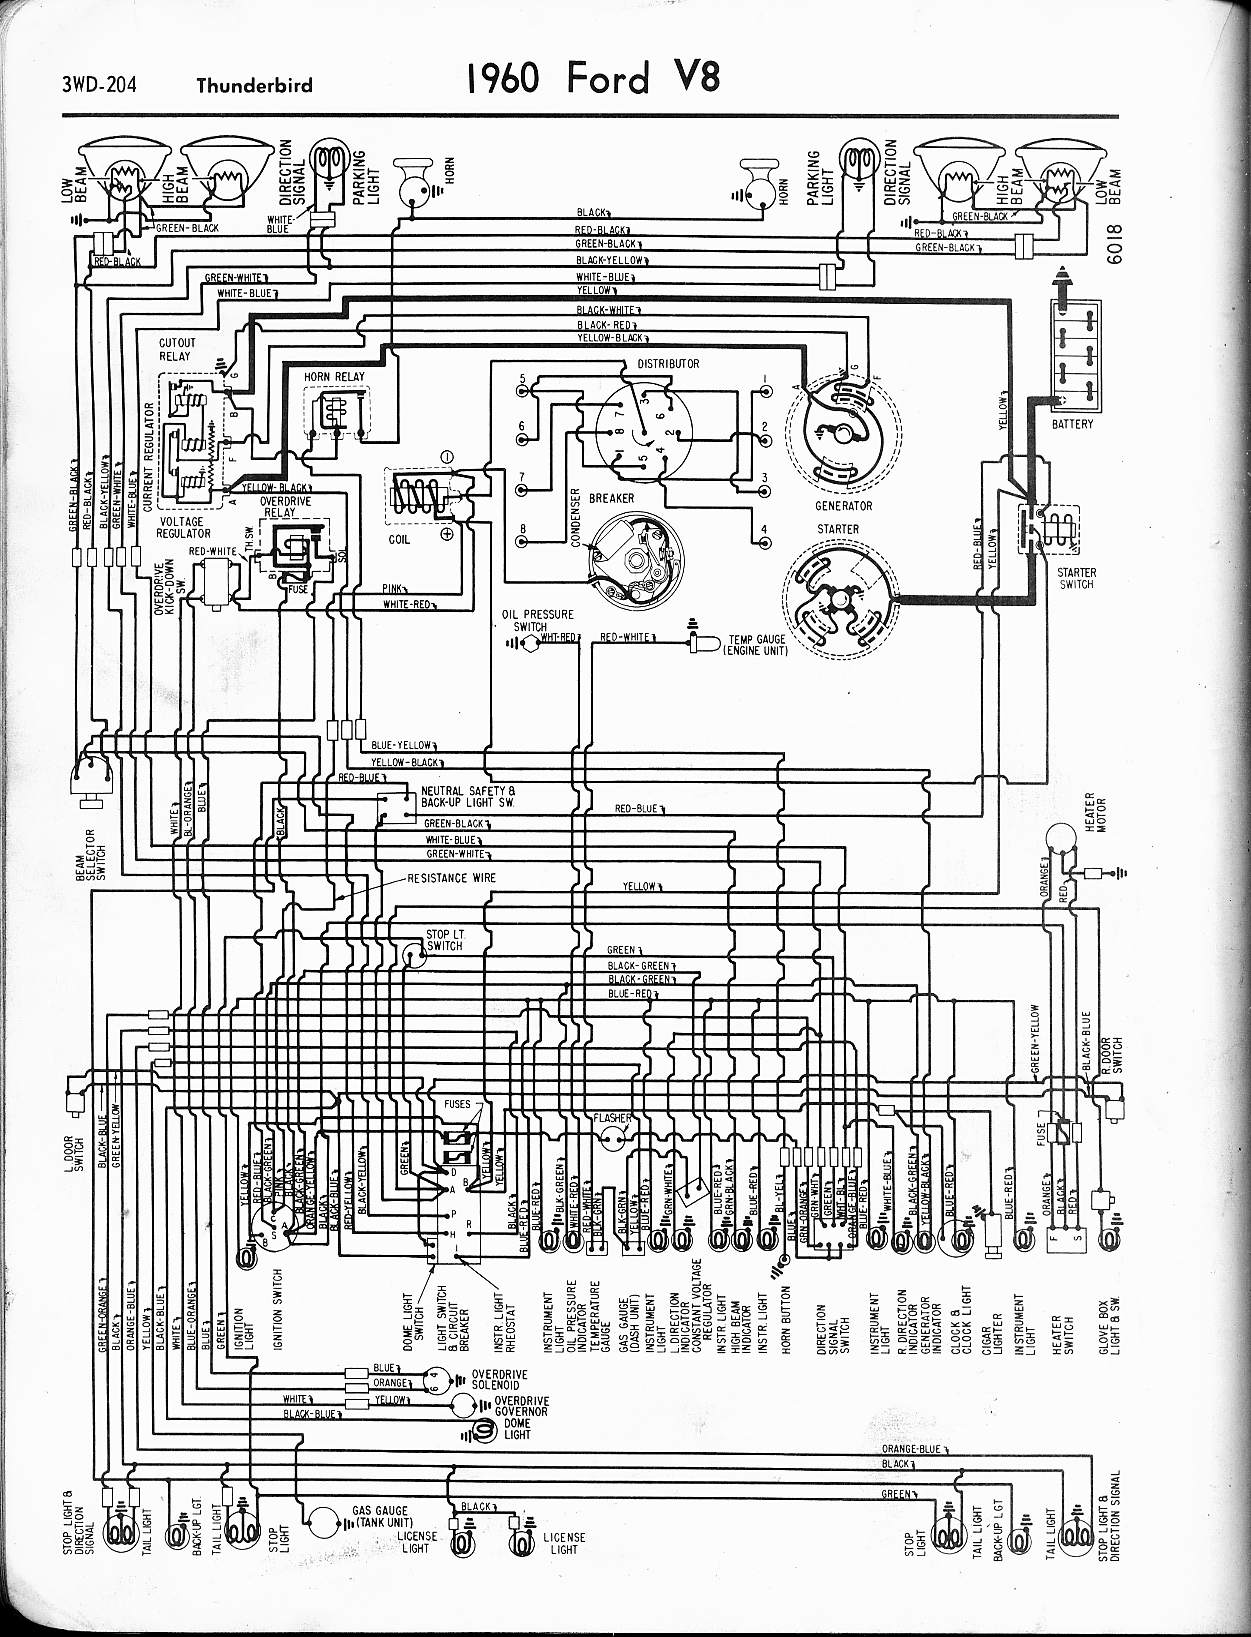 1960 Ford Headlight Switch Diagram Trusted Wiring Diagrams 1941 57 65 Rh Oldcarmanualproject Com Model A Light